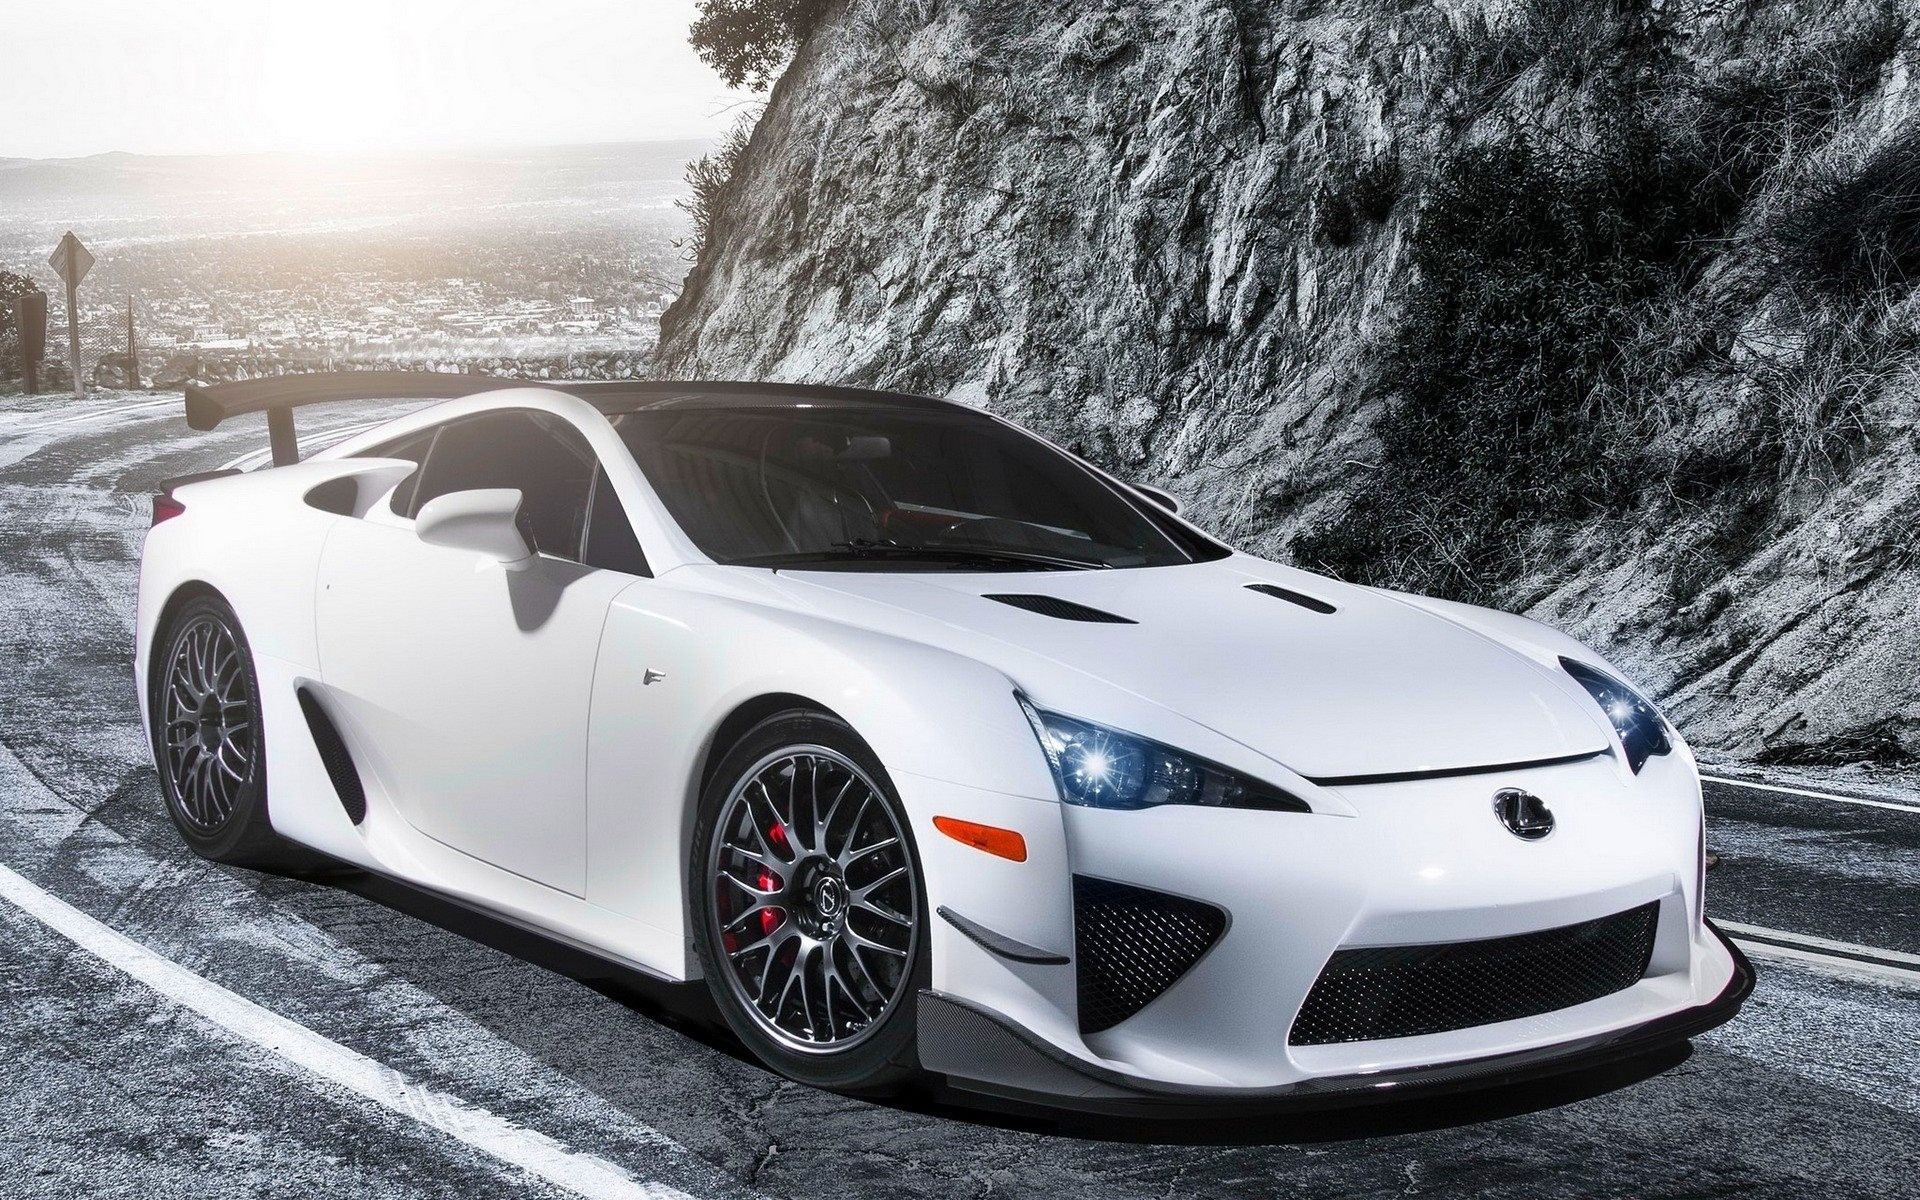 lexus lfa wallpaper hd car wallpapers id 4924. Black Bedroom Furniture Sets. Home Design Ideas